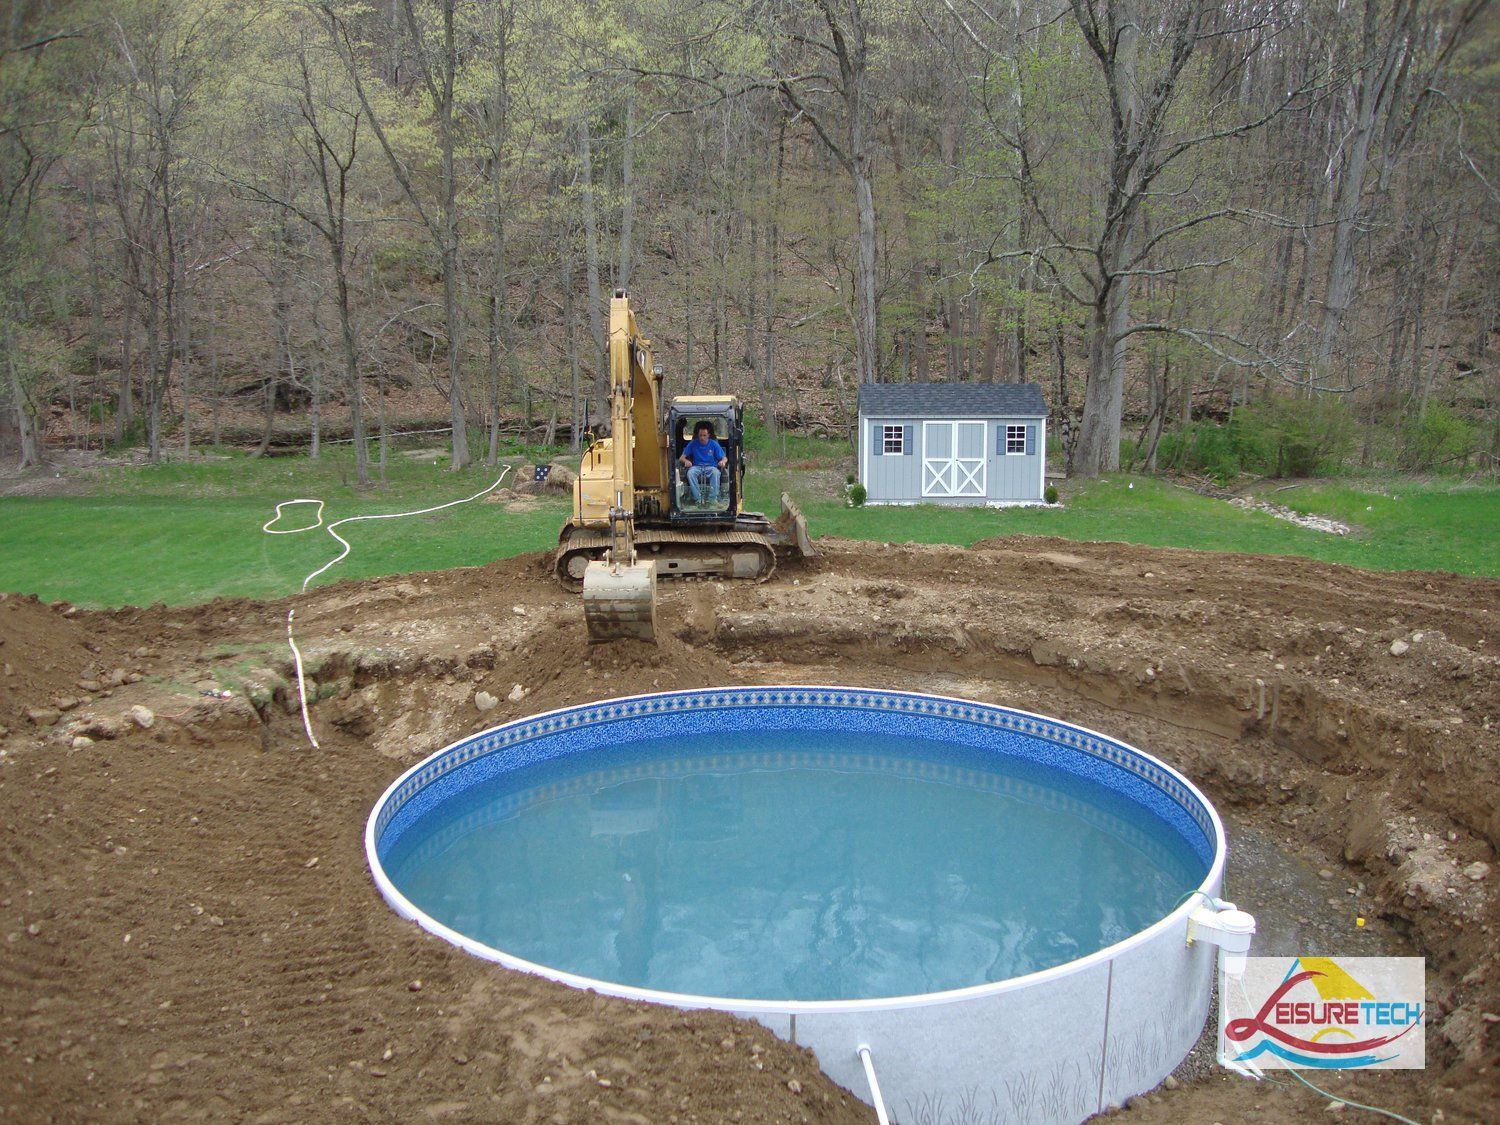 Pin on Swimming pools & water holes